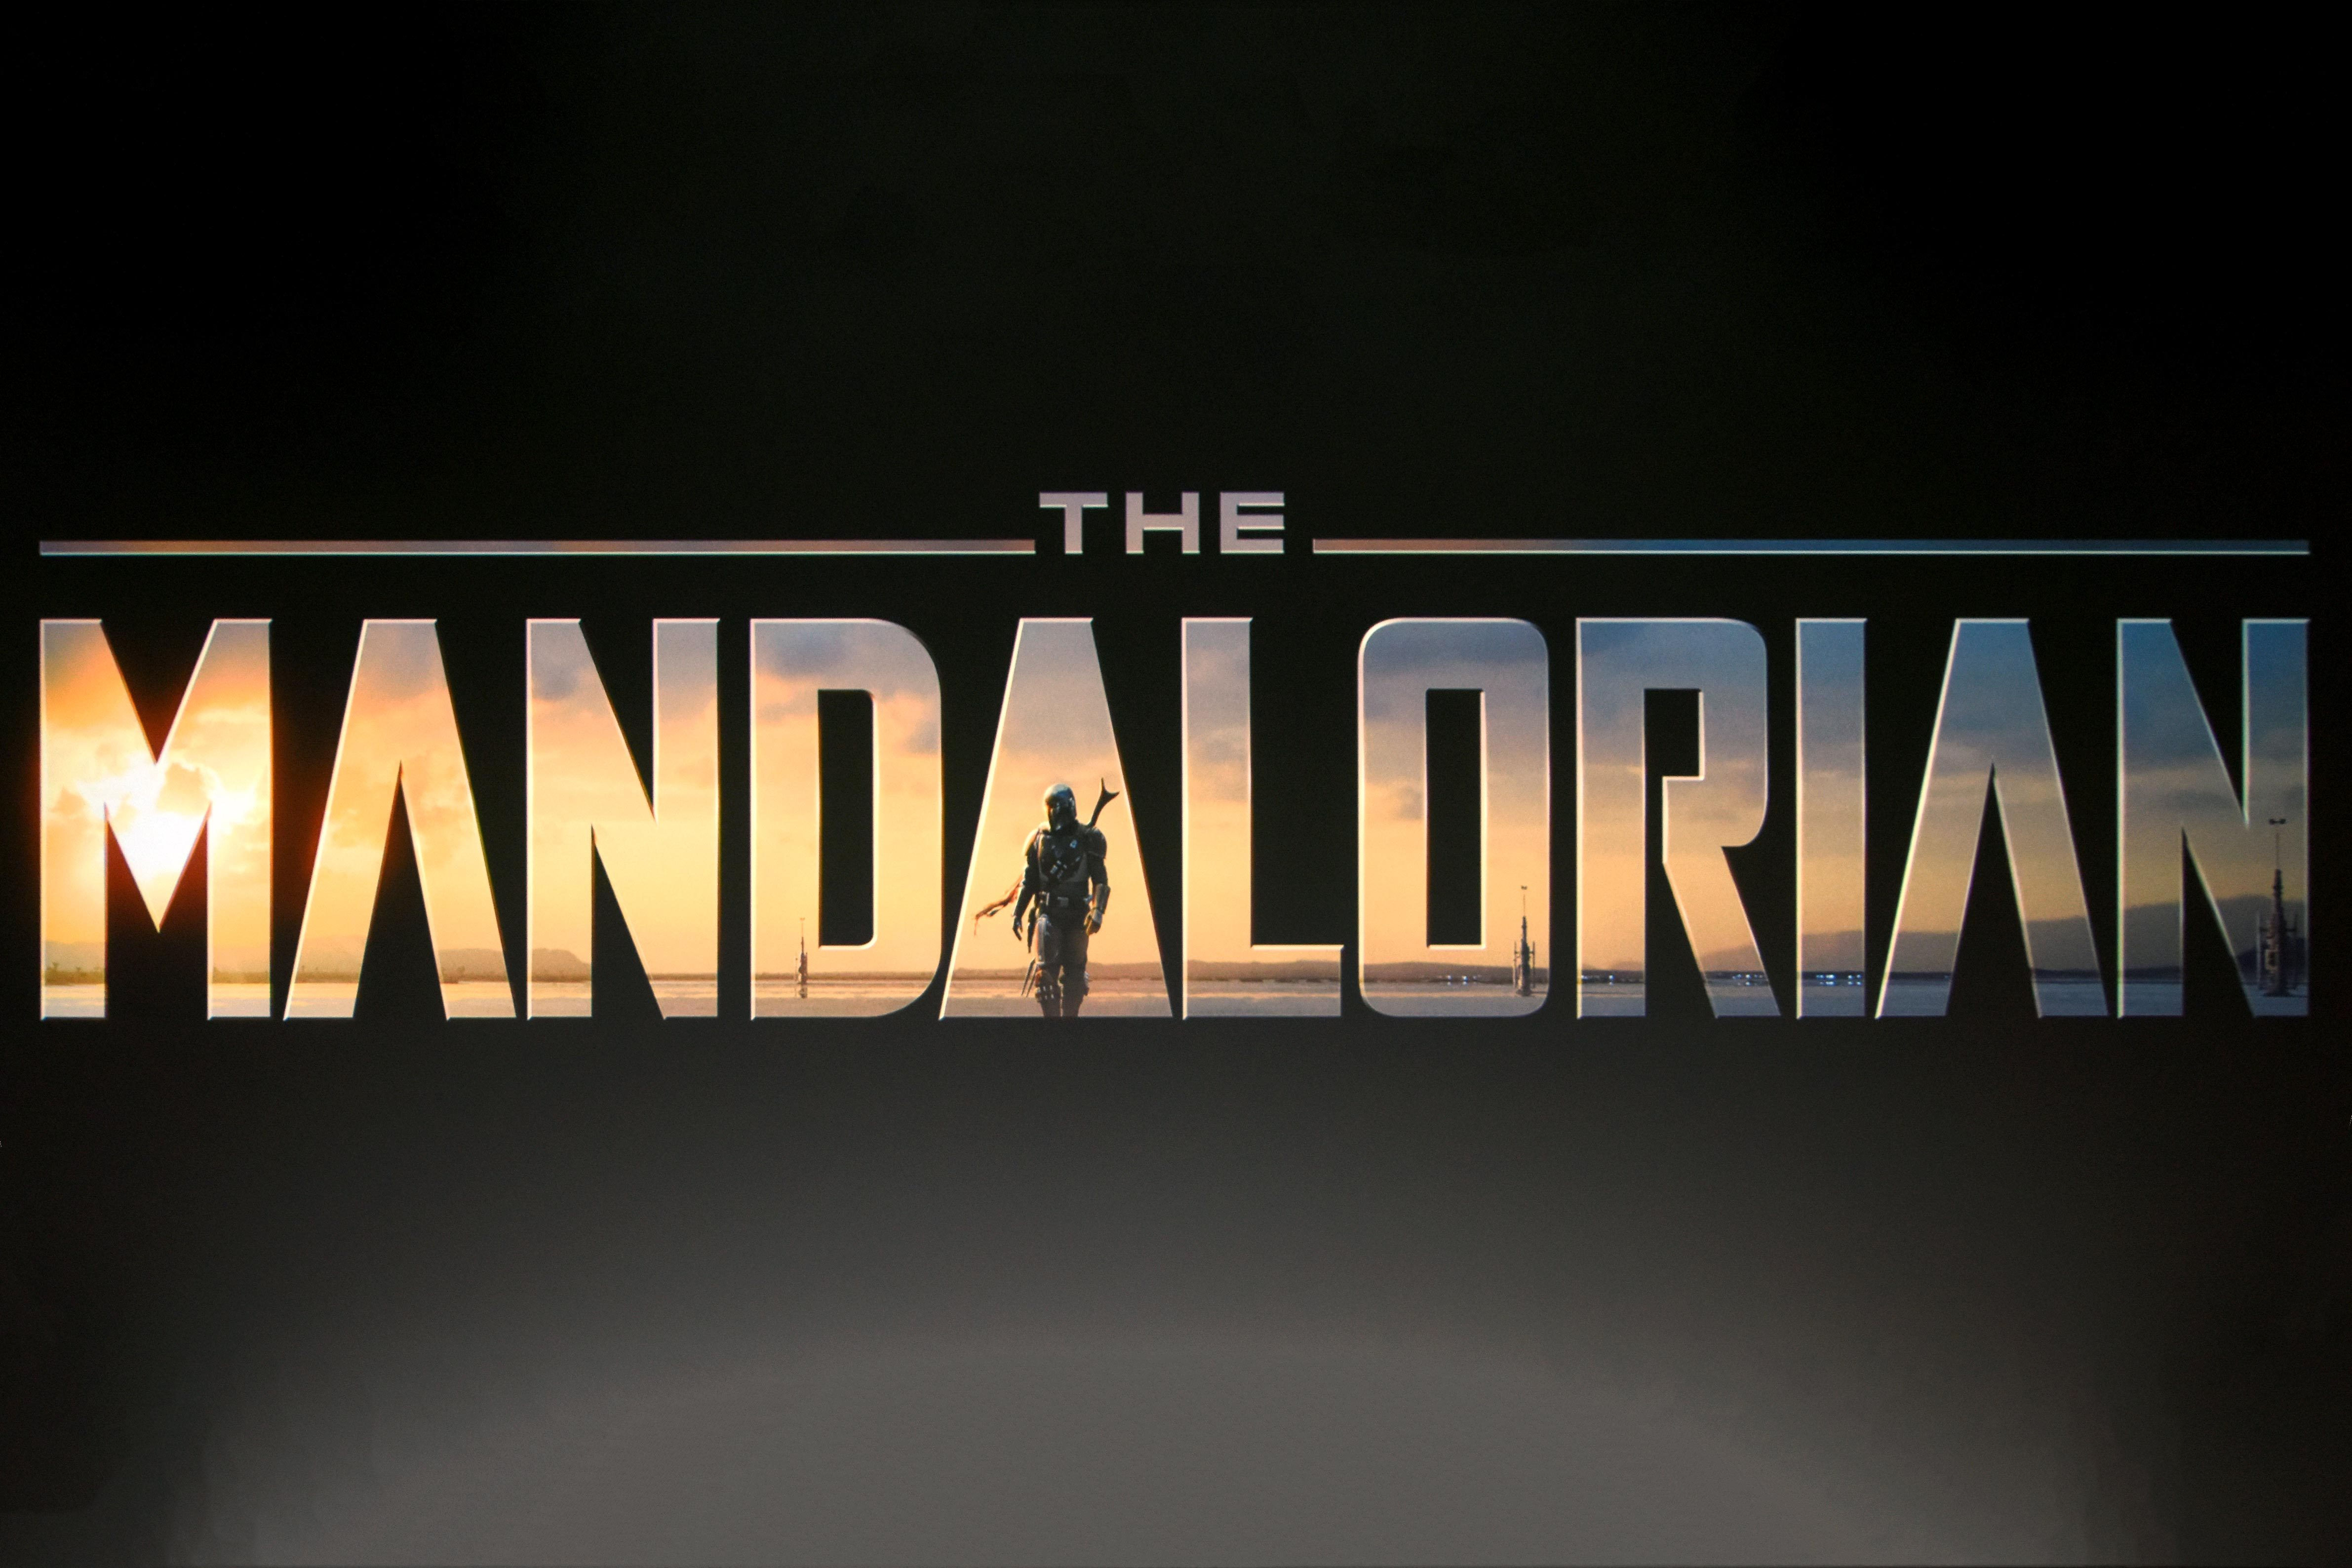 the mandalorian logo projected on a big screen